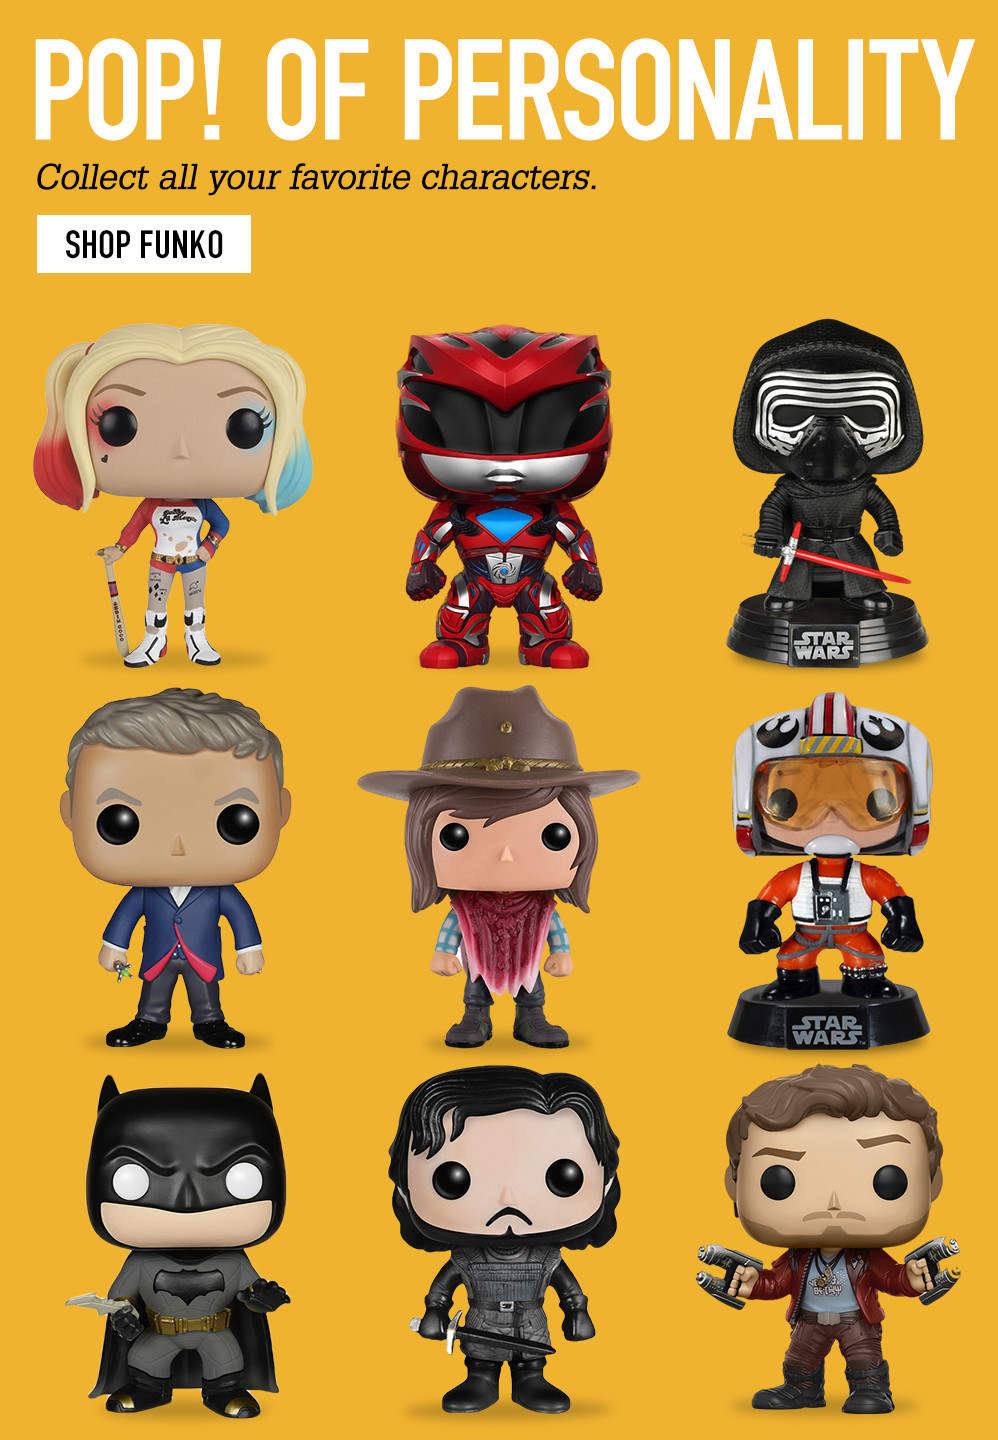 POP! OF PERSONALITY. Collect all your favorite characters. SHOP FUNKO